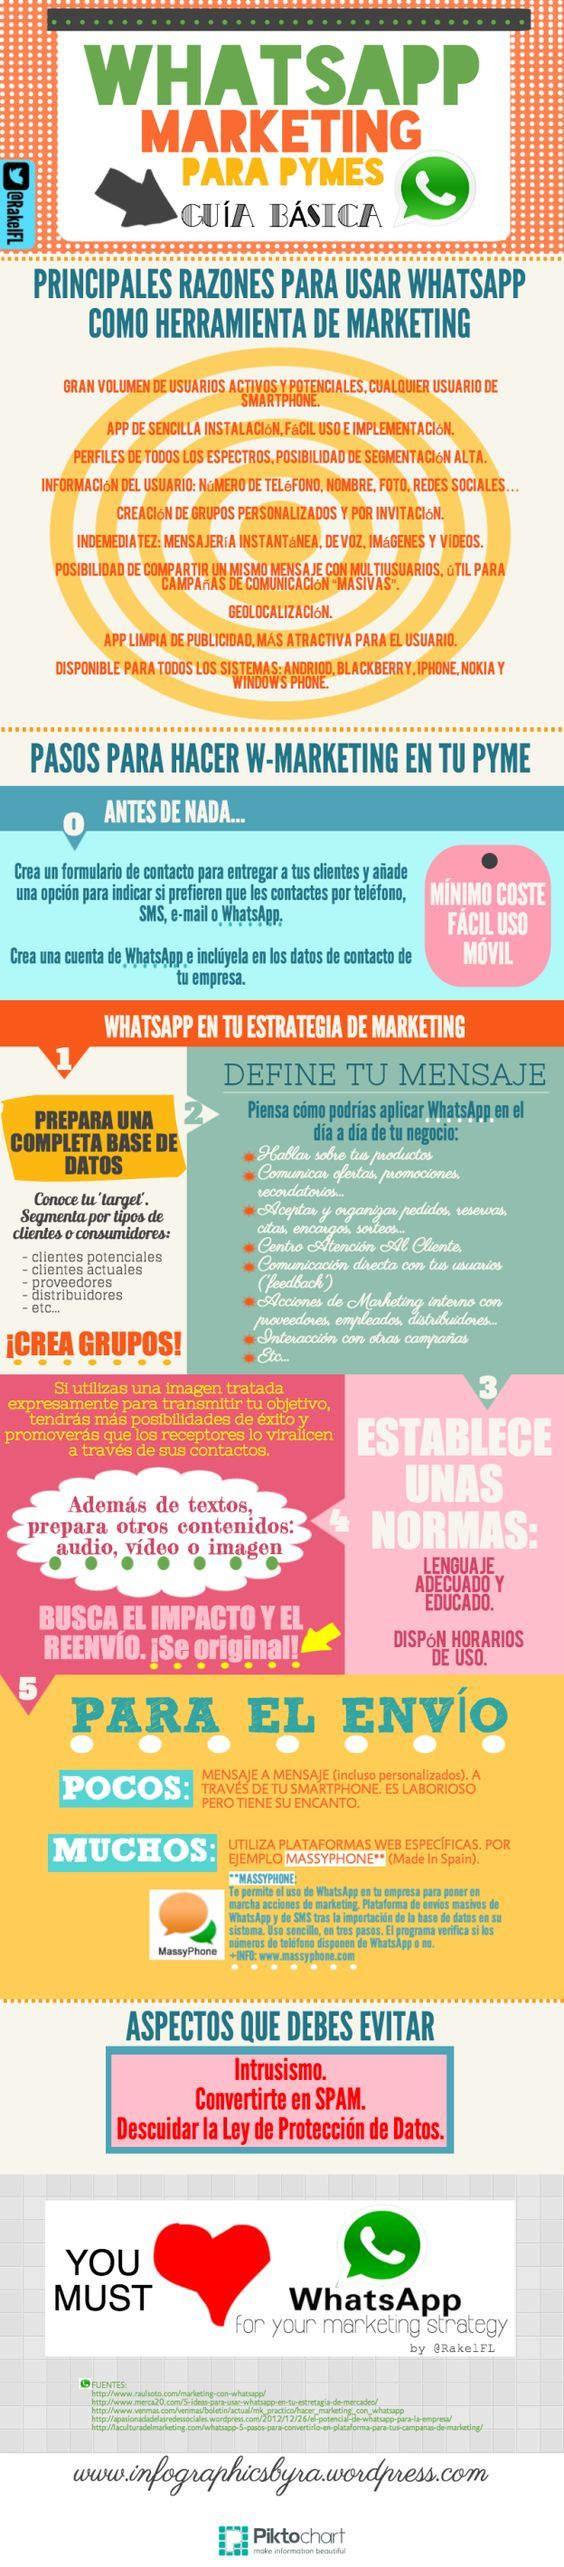 Marketing en WhatsApp para pymes